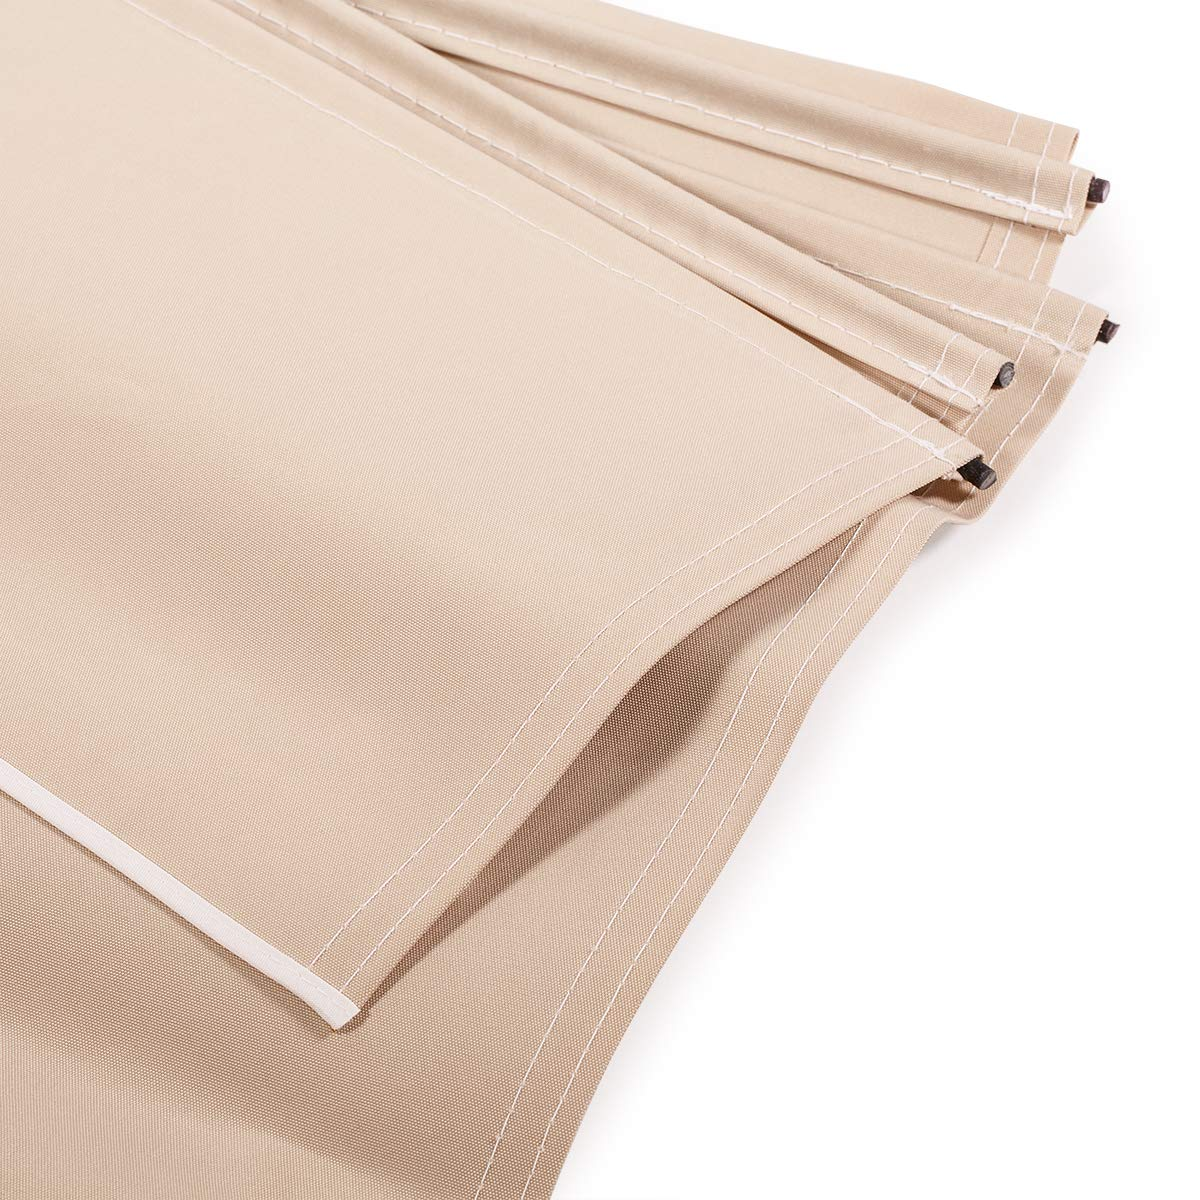 XtremepowerUS Patio Manual Retractable Sunshade Awning Shade Outdoor - Beige (10' x 8'ft) UV Resistant Water Sun Shade by XtremepowerUS (Image #6)